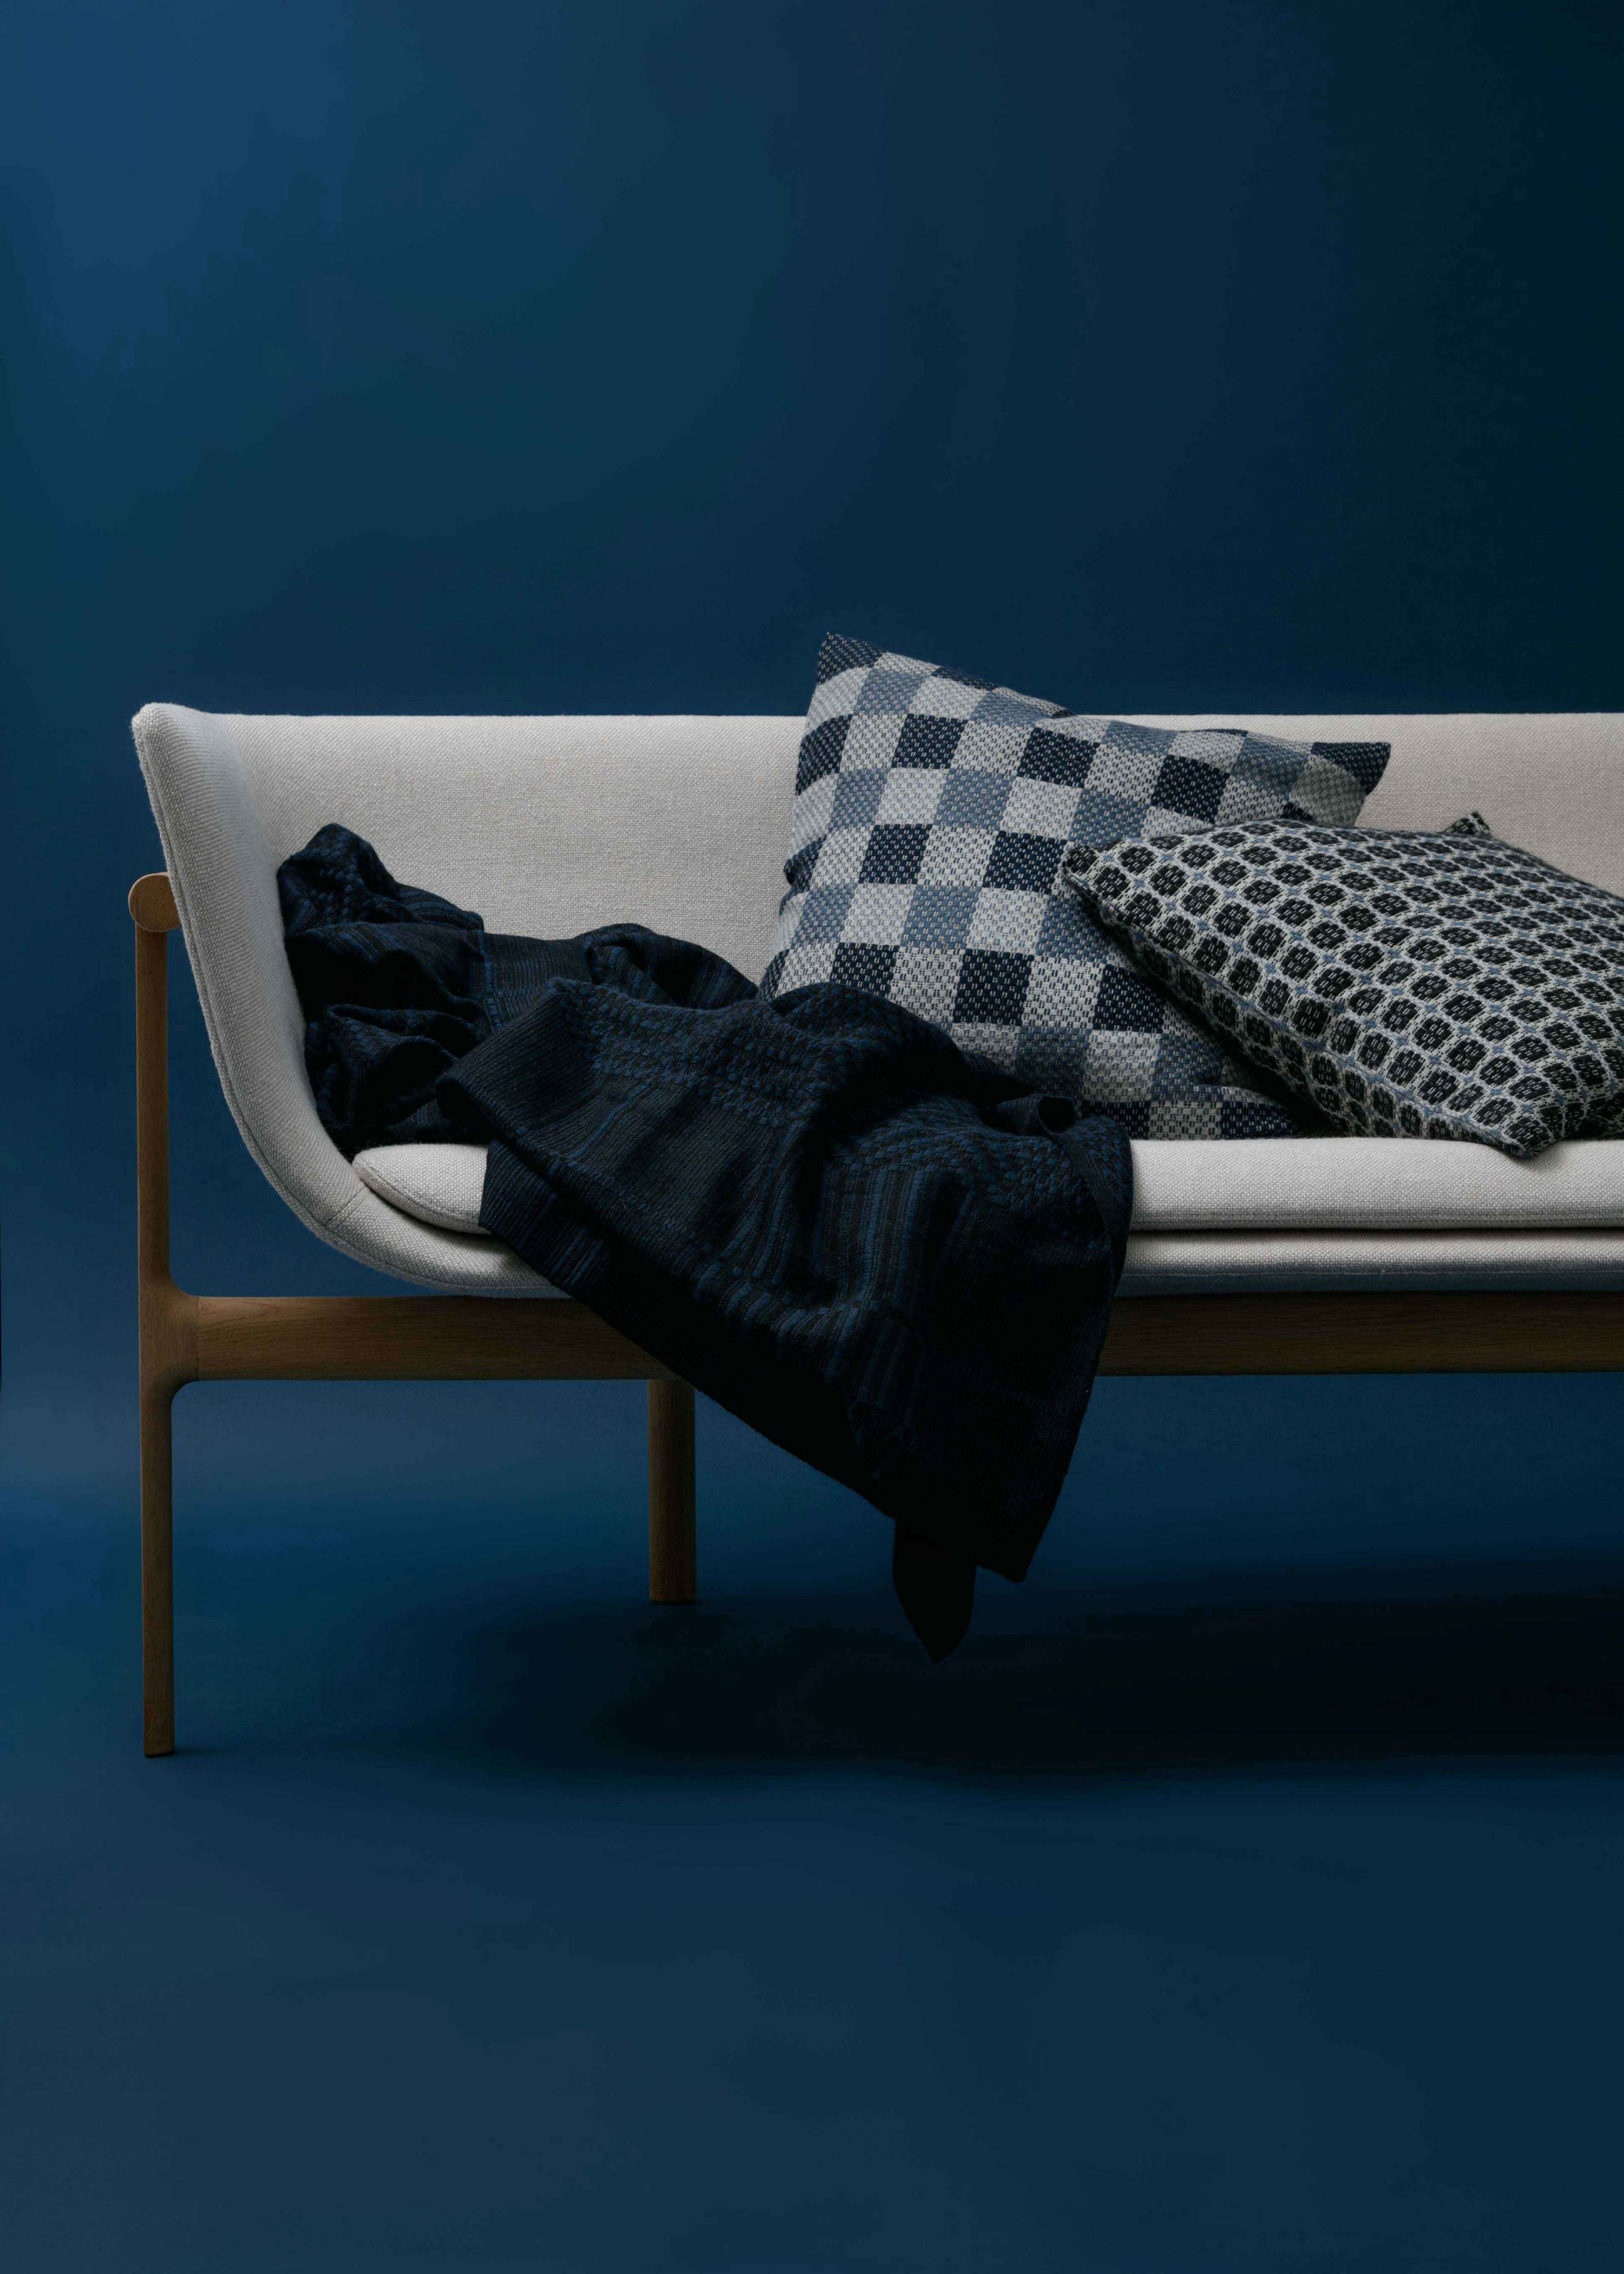 Vaeven Havn overshot coverlet styled throw